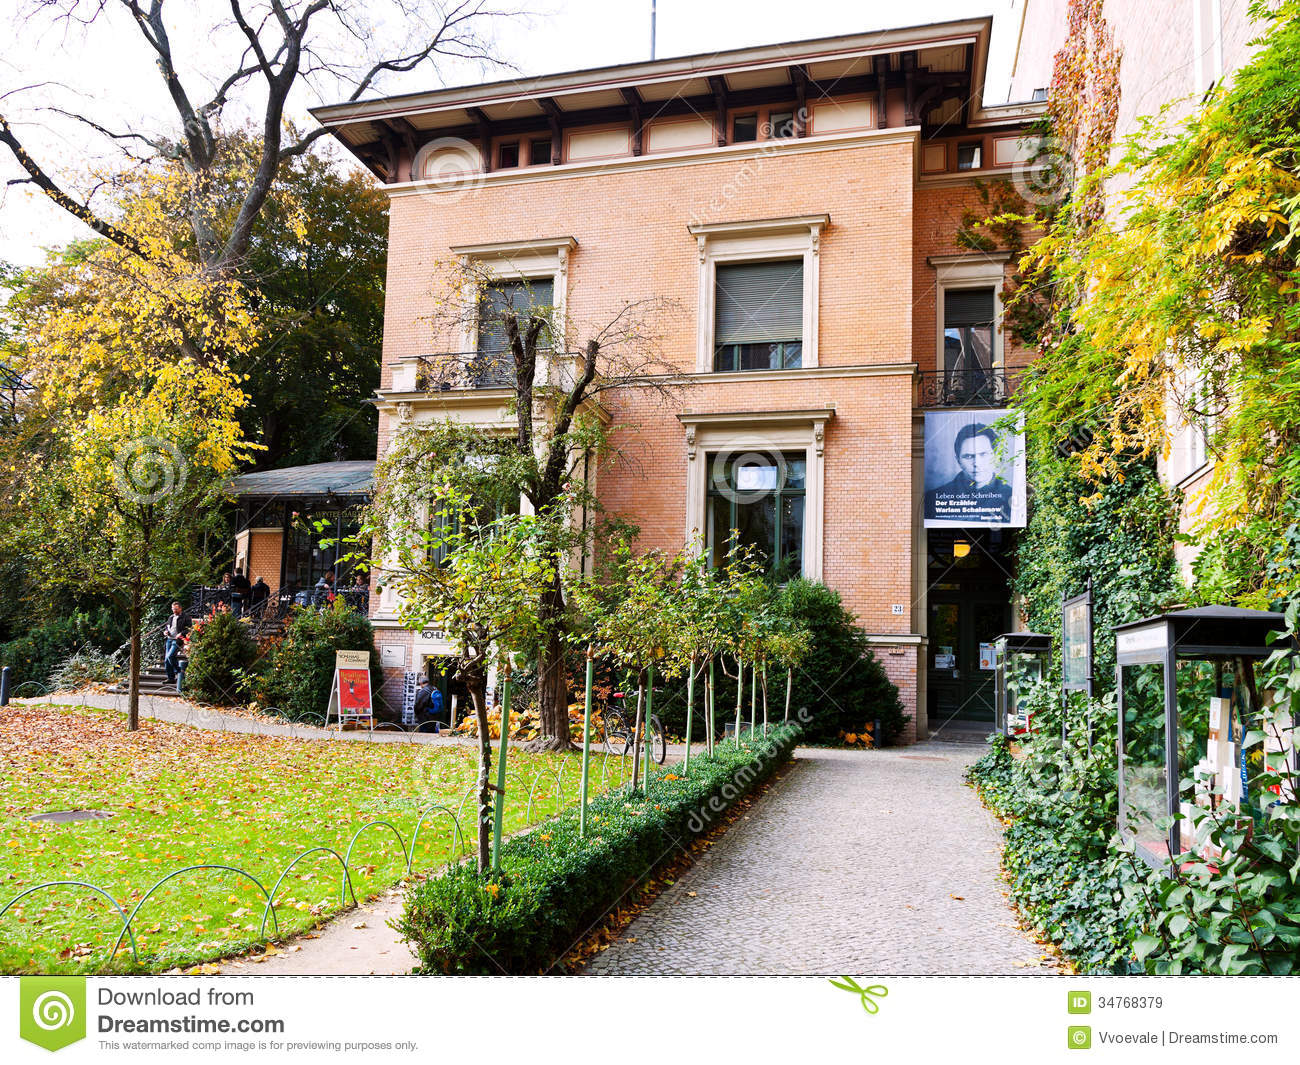 House in berlin in october 19 2013 the house of literature is